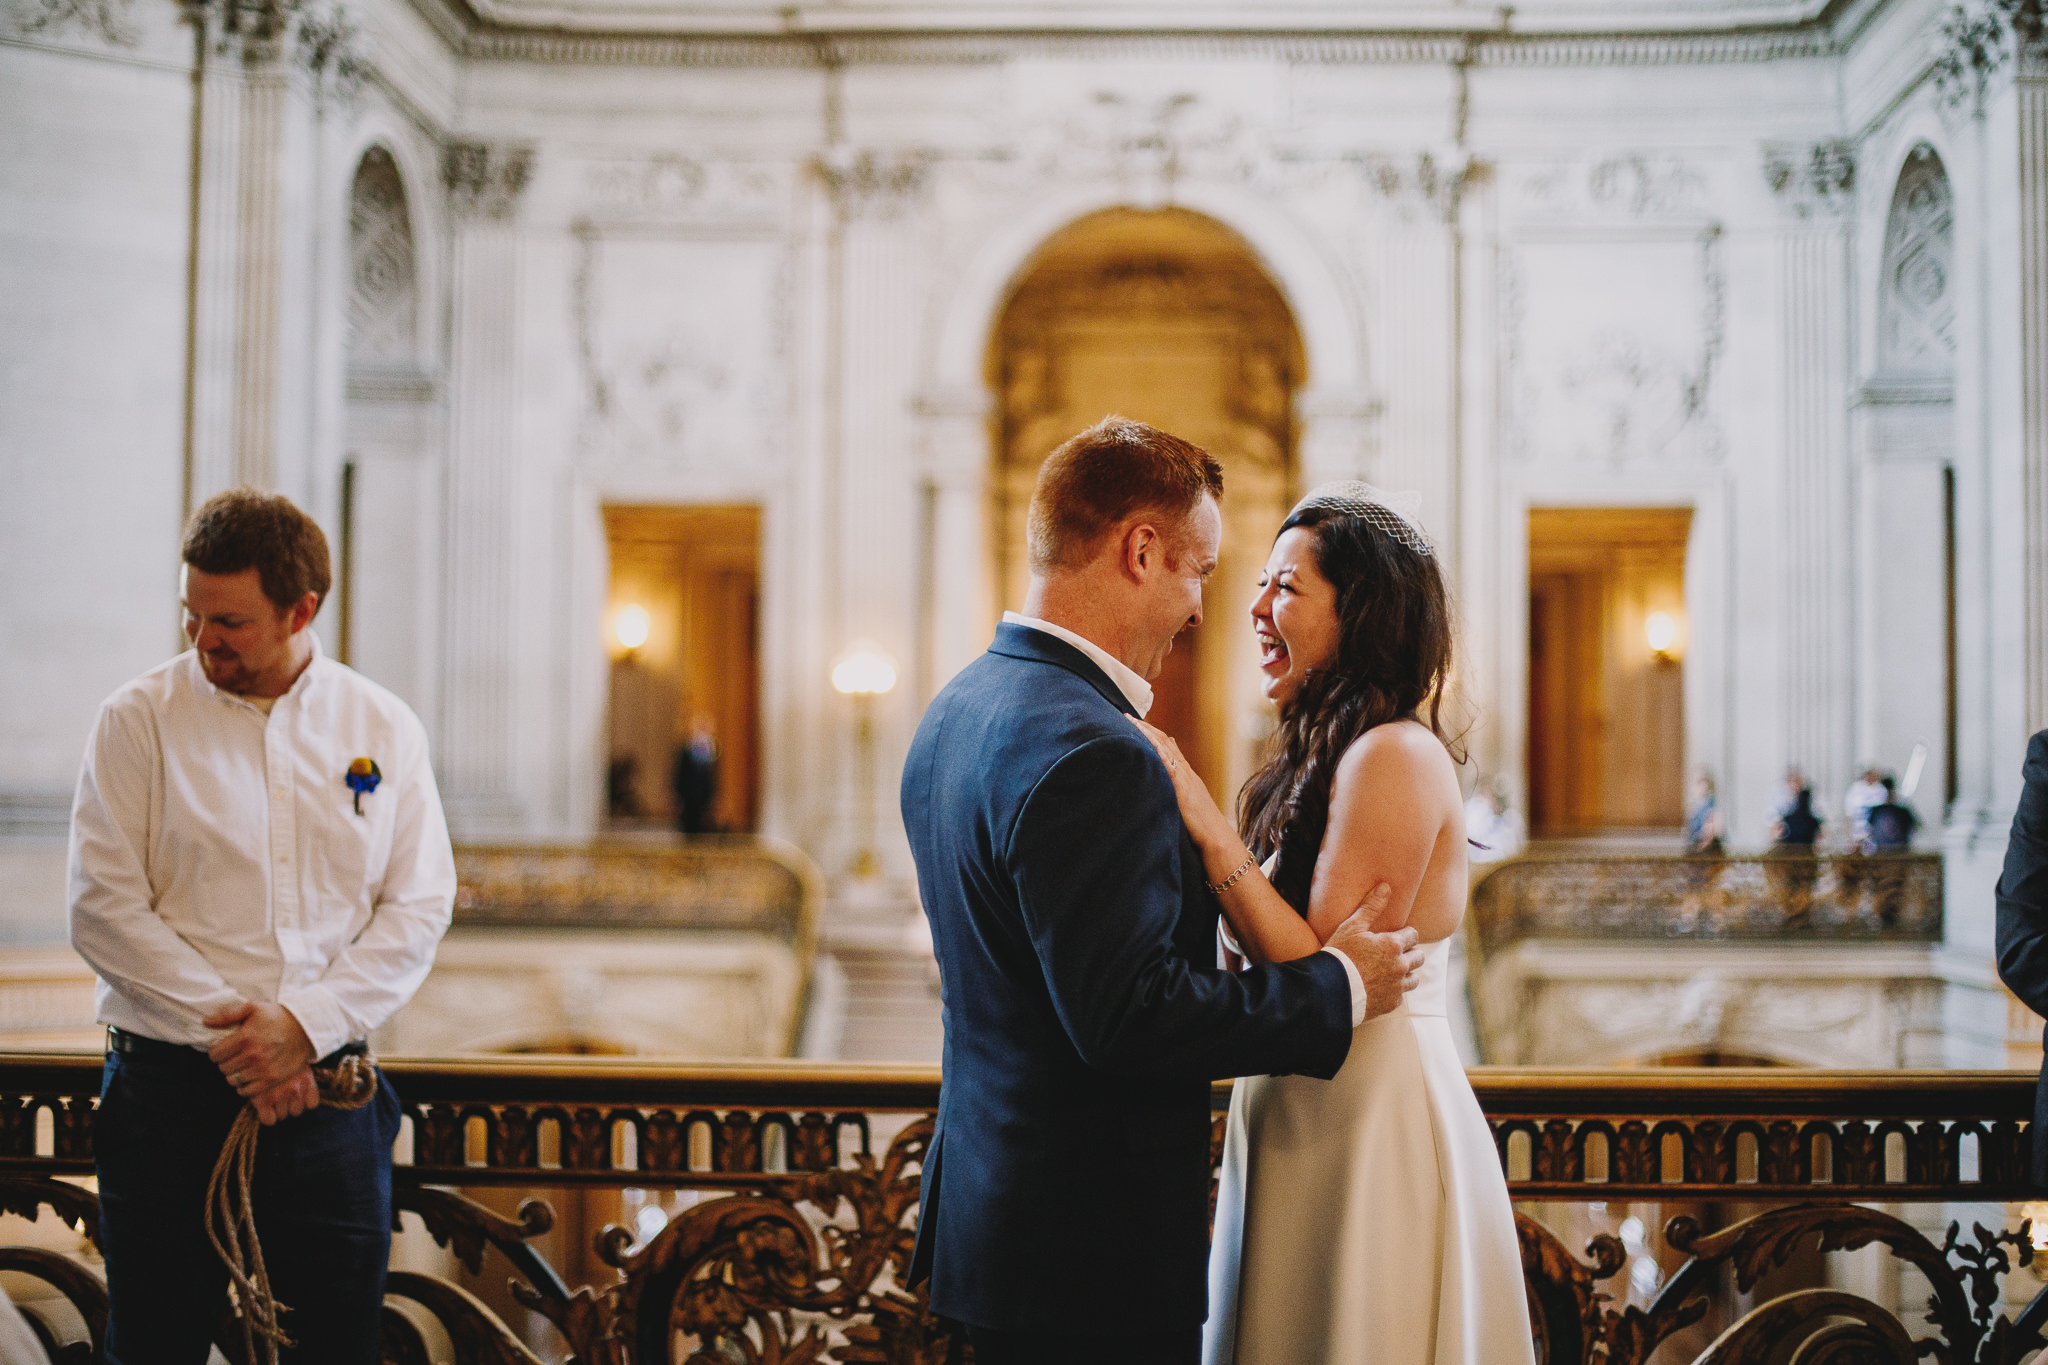 Archer Inspired Photography SF City Hall Elopement Wedding Lifestyle Documentary Affordable Photographer-135.jpg